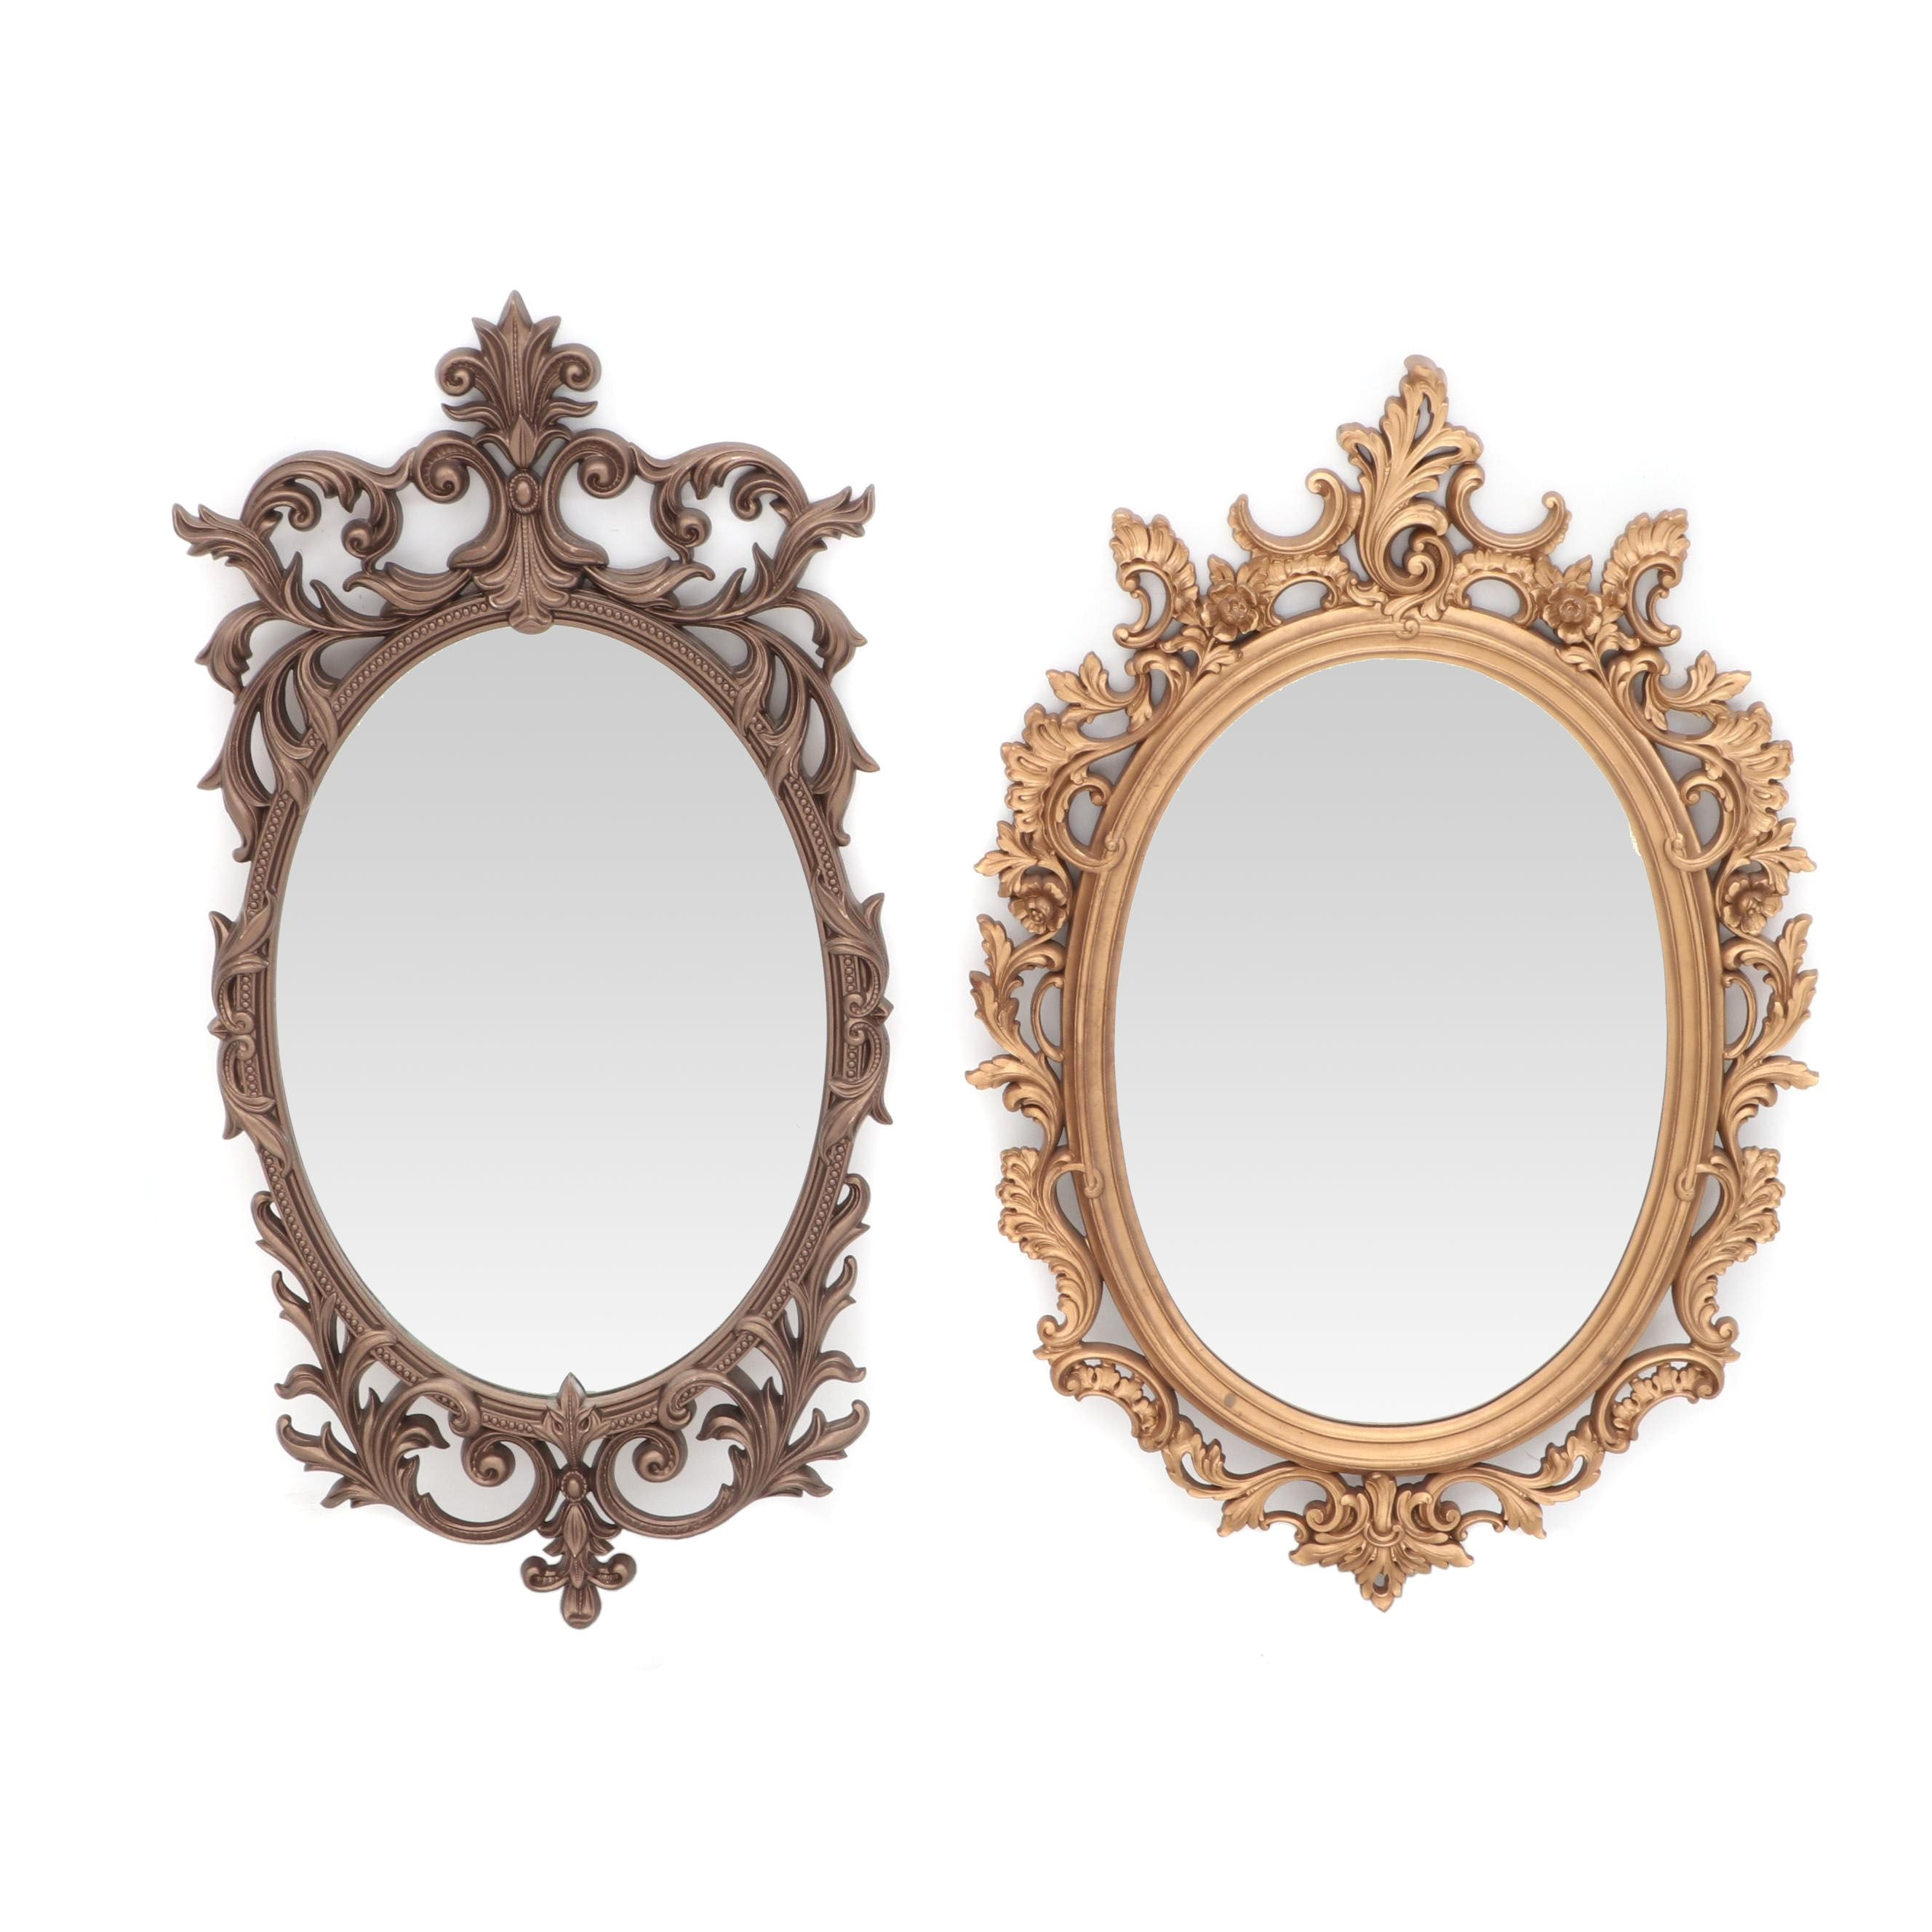 Pairing of Vintage Wall Mirrors